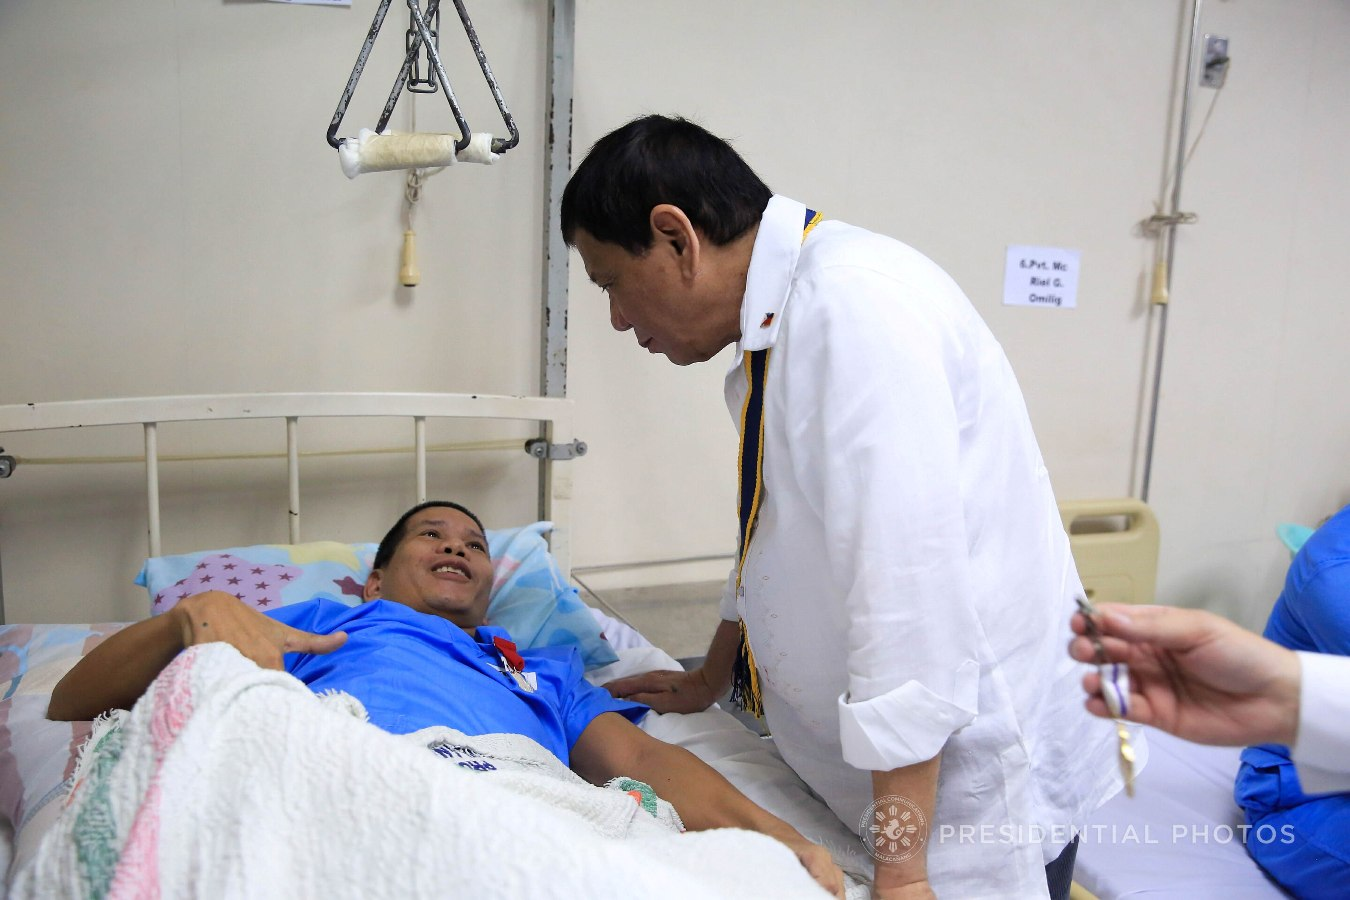 President Rodrigo Roa Duterte chats with TSgt. Rolly Magalona who was awarded with the Order of Lapu-Lapu Kampilan Medal during the President's visit to the wounded troopers at the Manila Naval Hospital in Fort Andres Bonifacio, Taguig City on November 7, 2017. ALBERT ALCAIN/PRESIDENTIAL PHOTO